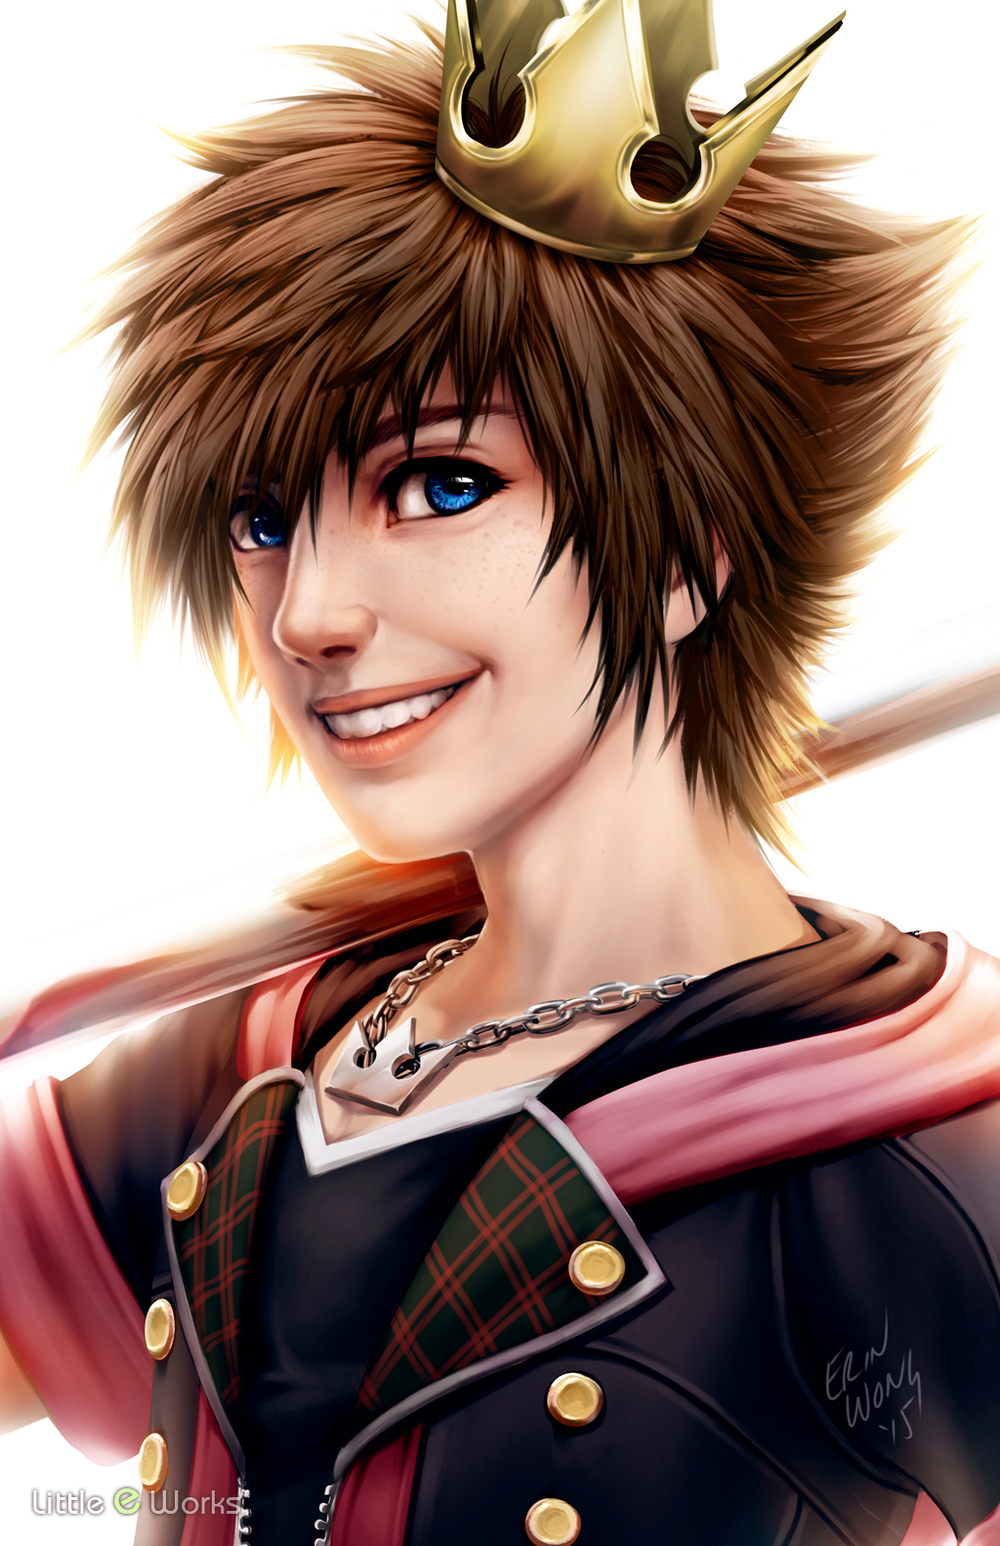 Semi-realism painting of Sora from Square Enix's Kingdom Hearts series.